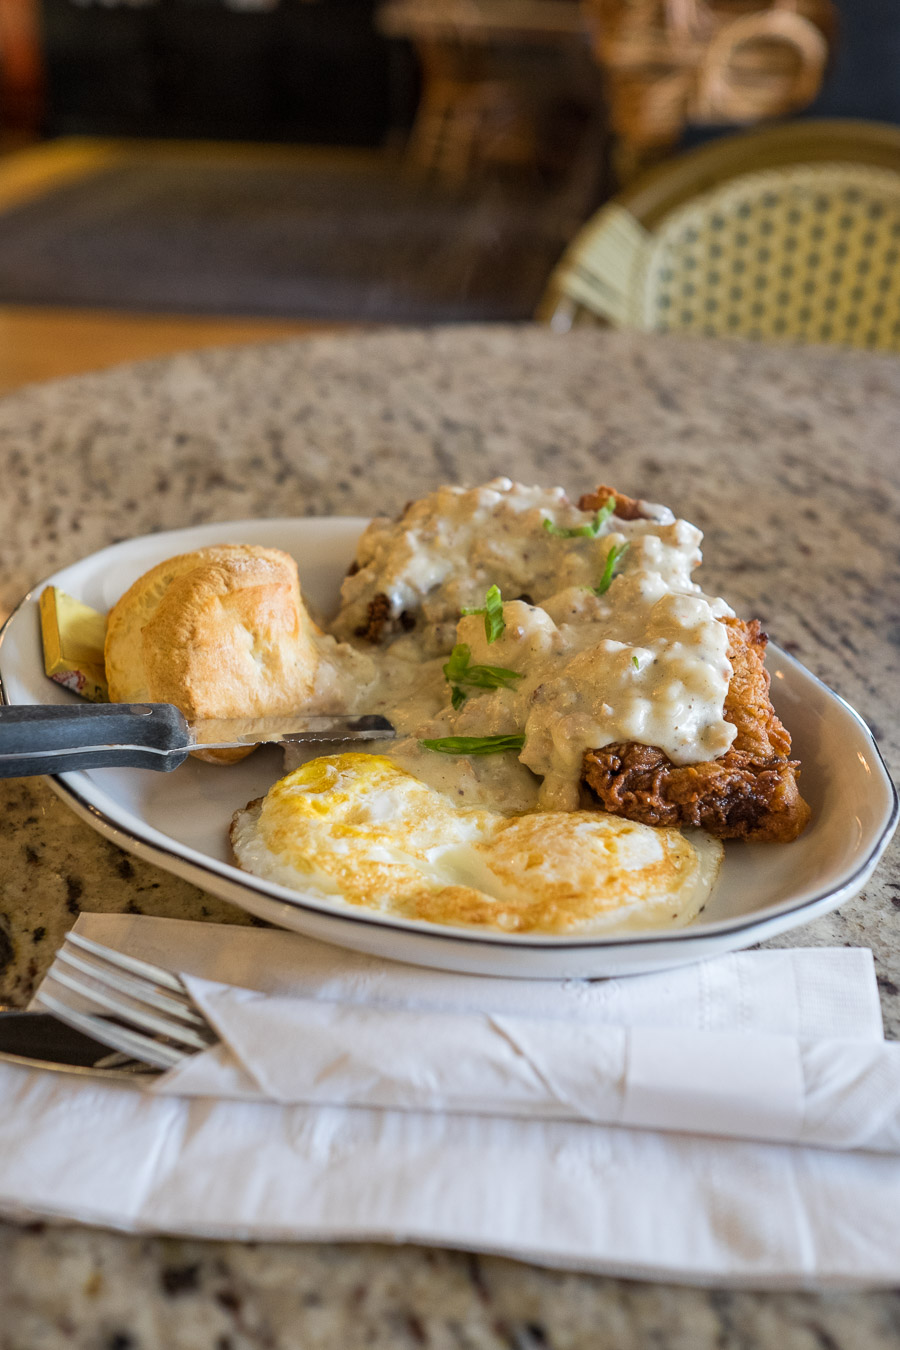 Chicken fried steak with country gravy, two eggs over easy and biscuits